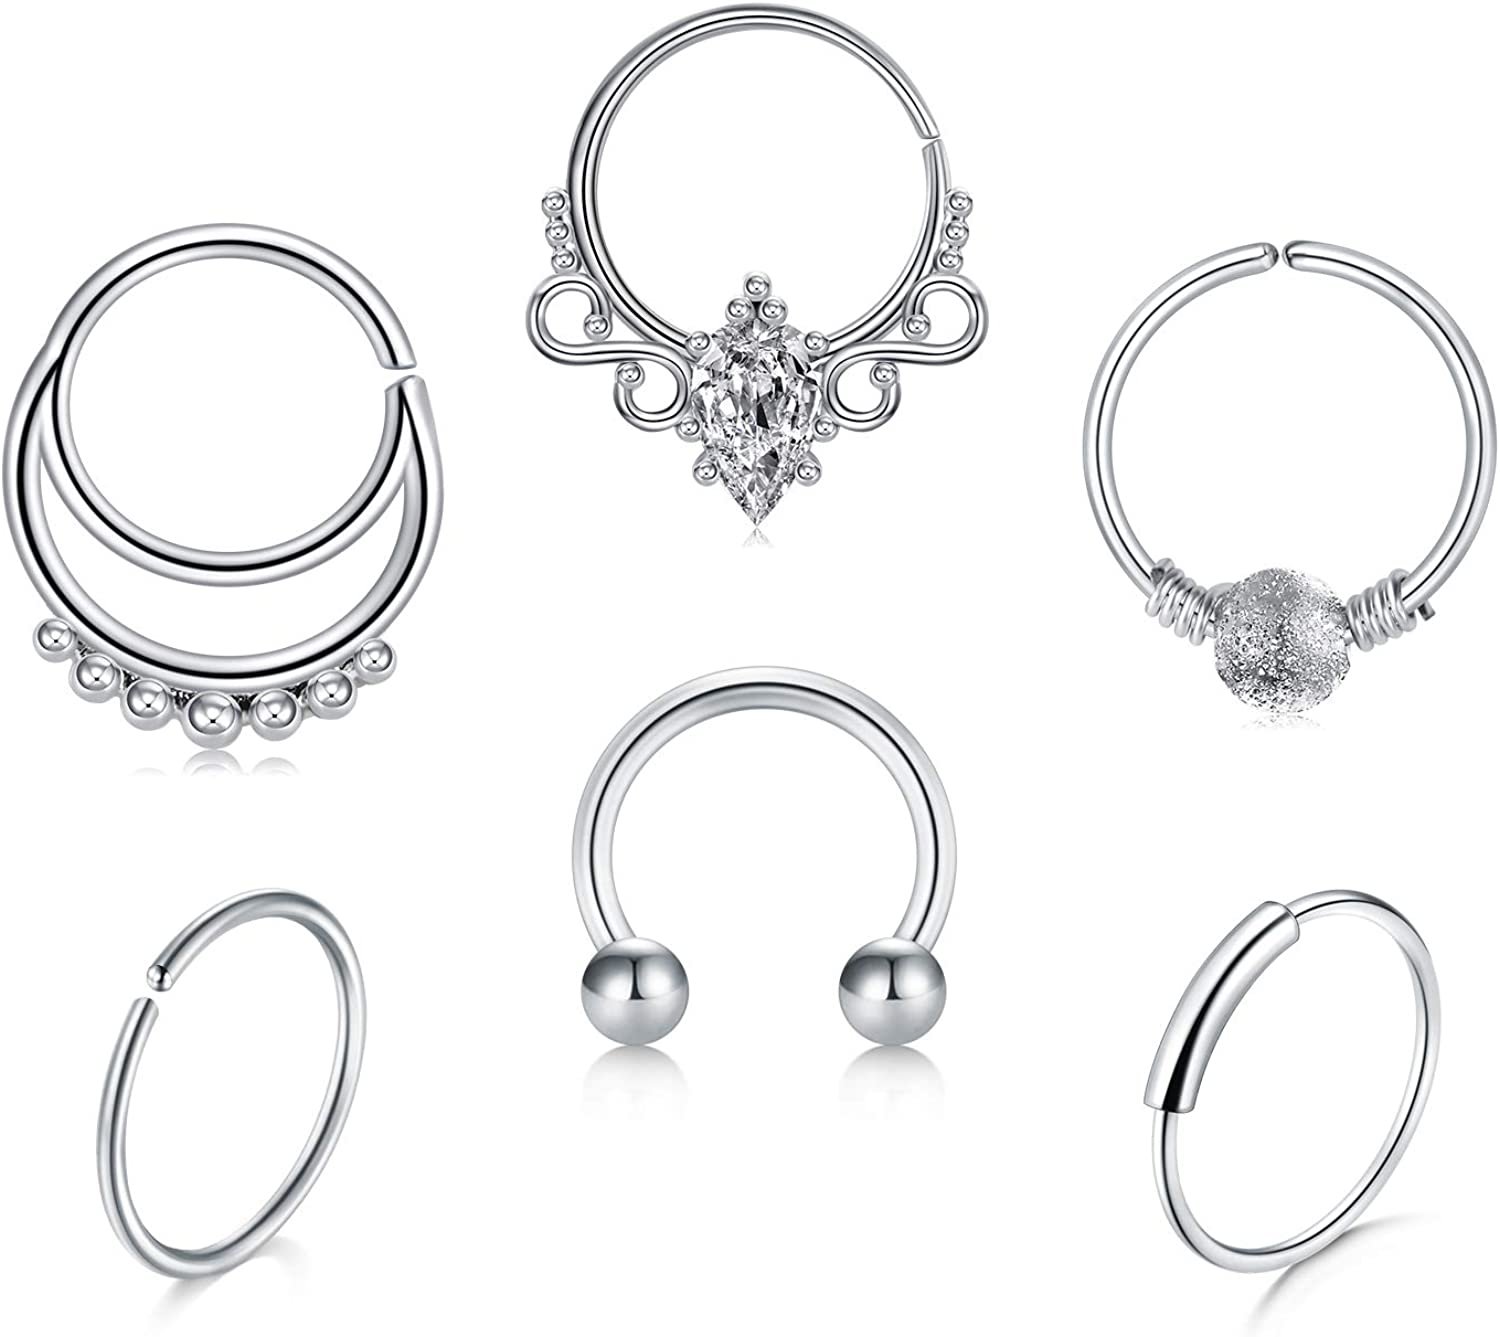 QWALIT 16G Nose Rings Hoop Septum Ring Helix Cartilage Tragus Daith Earrings Hoop 18g Seamless Hinged Clicker CZ Surgical Stainless Steel Lip Septum Piercings Jewelry for Men Women 8mm